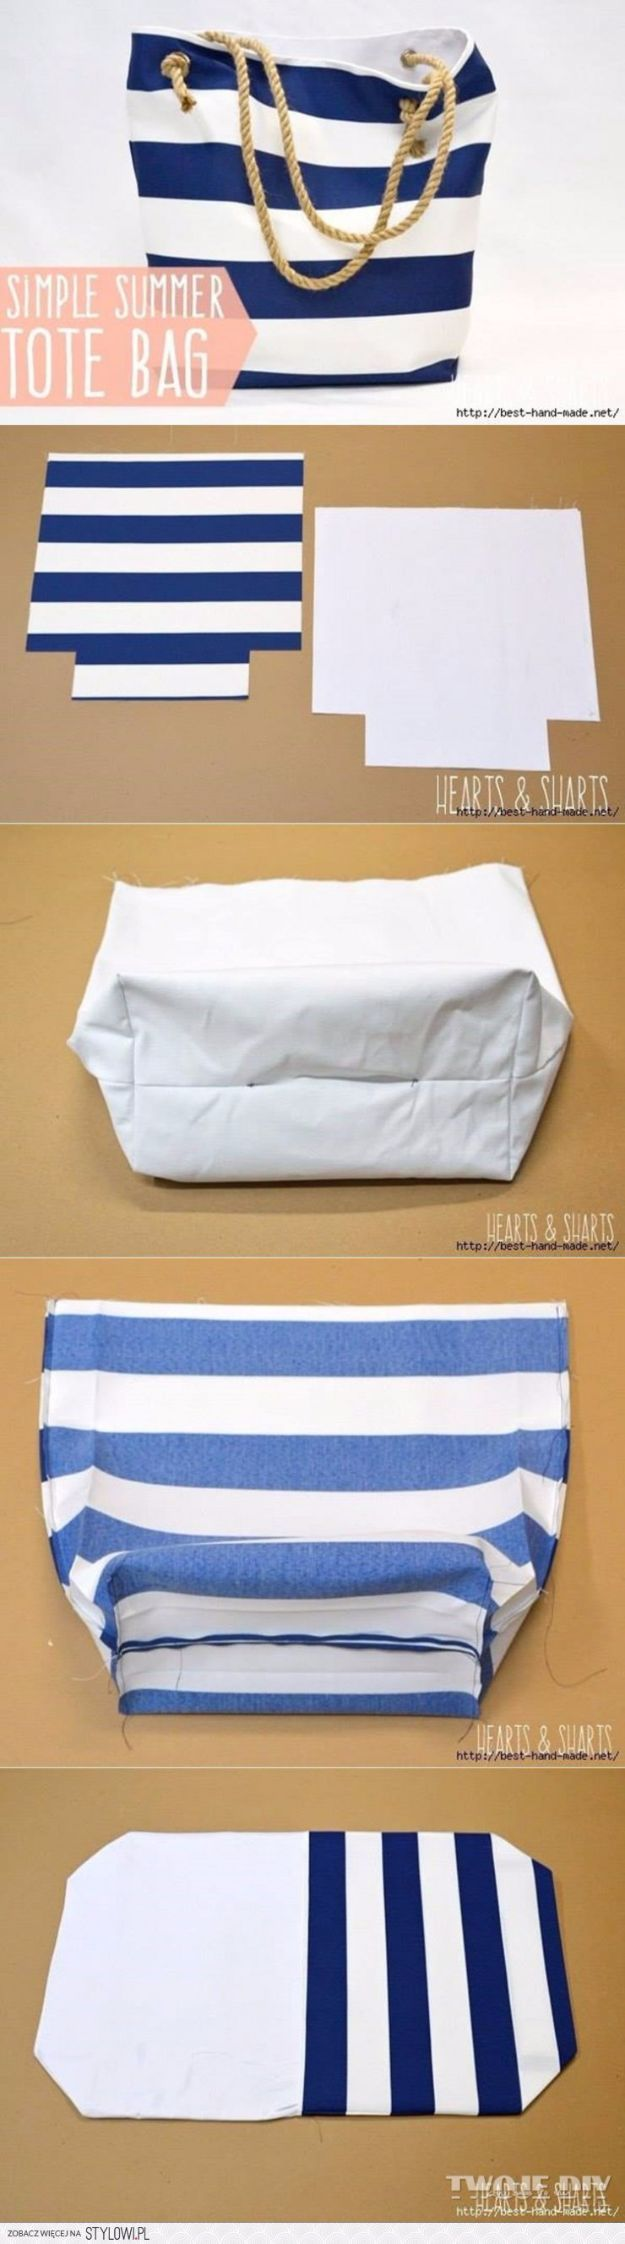 DIY Bags for Summer - DIY Fabric Basket - Easy Ideas to Make for Beach and Pool - Quick Projects for a Bag on A Budget - Cute No Sew Idea, Quick Sewing Patterns - Paint and Crafts for Making Creative Beach Bags - Fun Tutorials for Kids, Teens, Teenagers, Girls and Adults http://diyprojectsforteens.com/diy-bags-summer